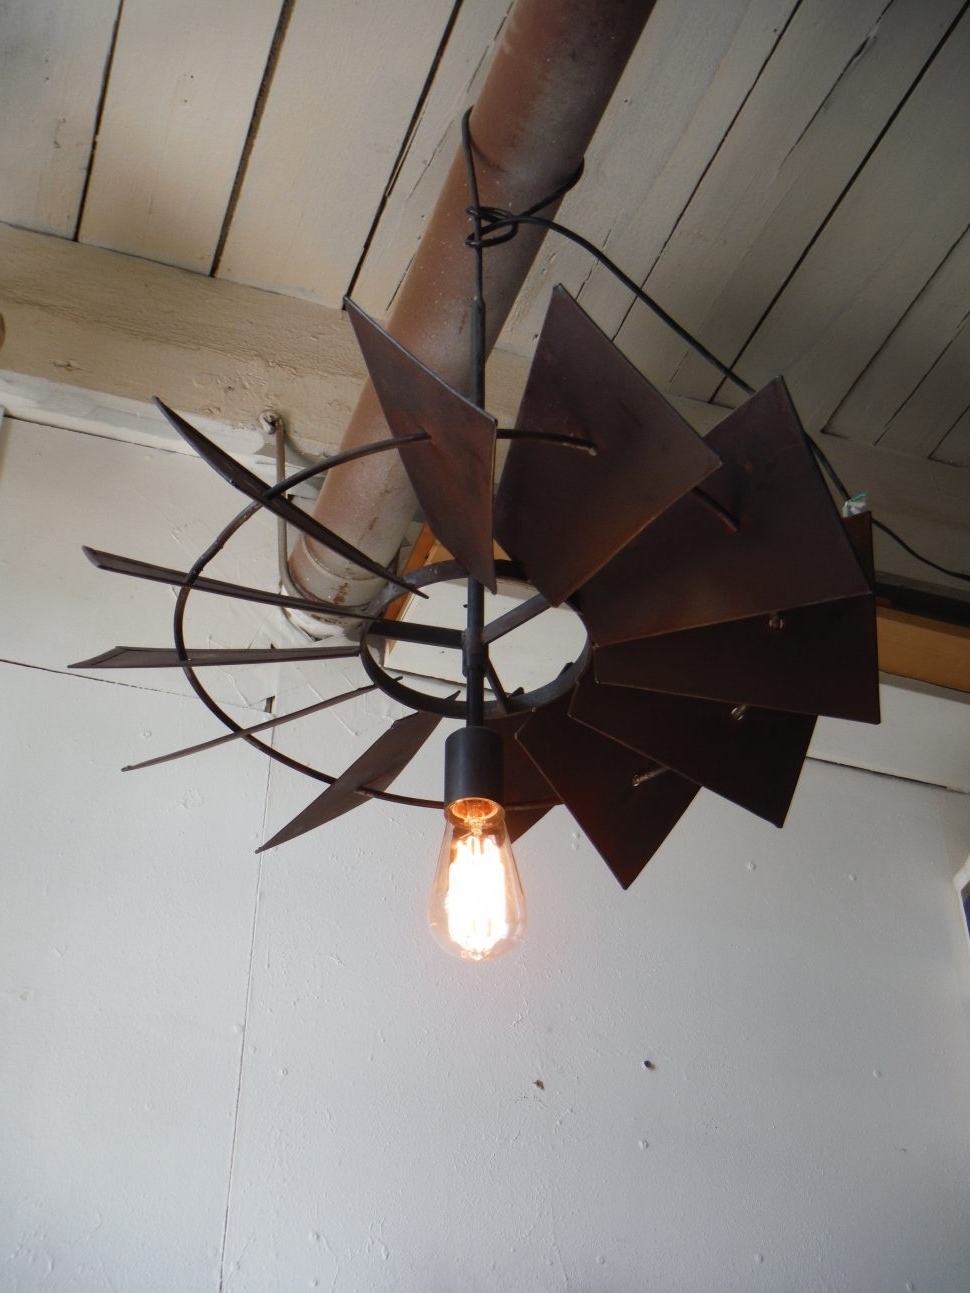 Outdoor Windmill Ceiling Fans With Light Throughout Most Recently Released Windmill Ceiling Fan With Light Kit Great Outdoor Ceiling Fan With (View 11 of 20)